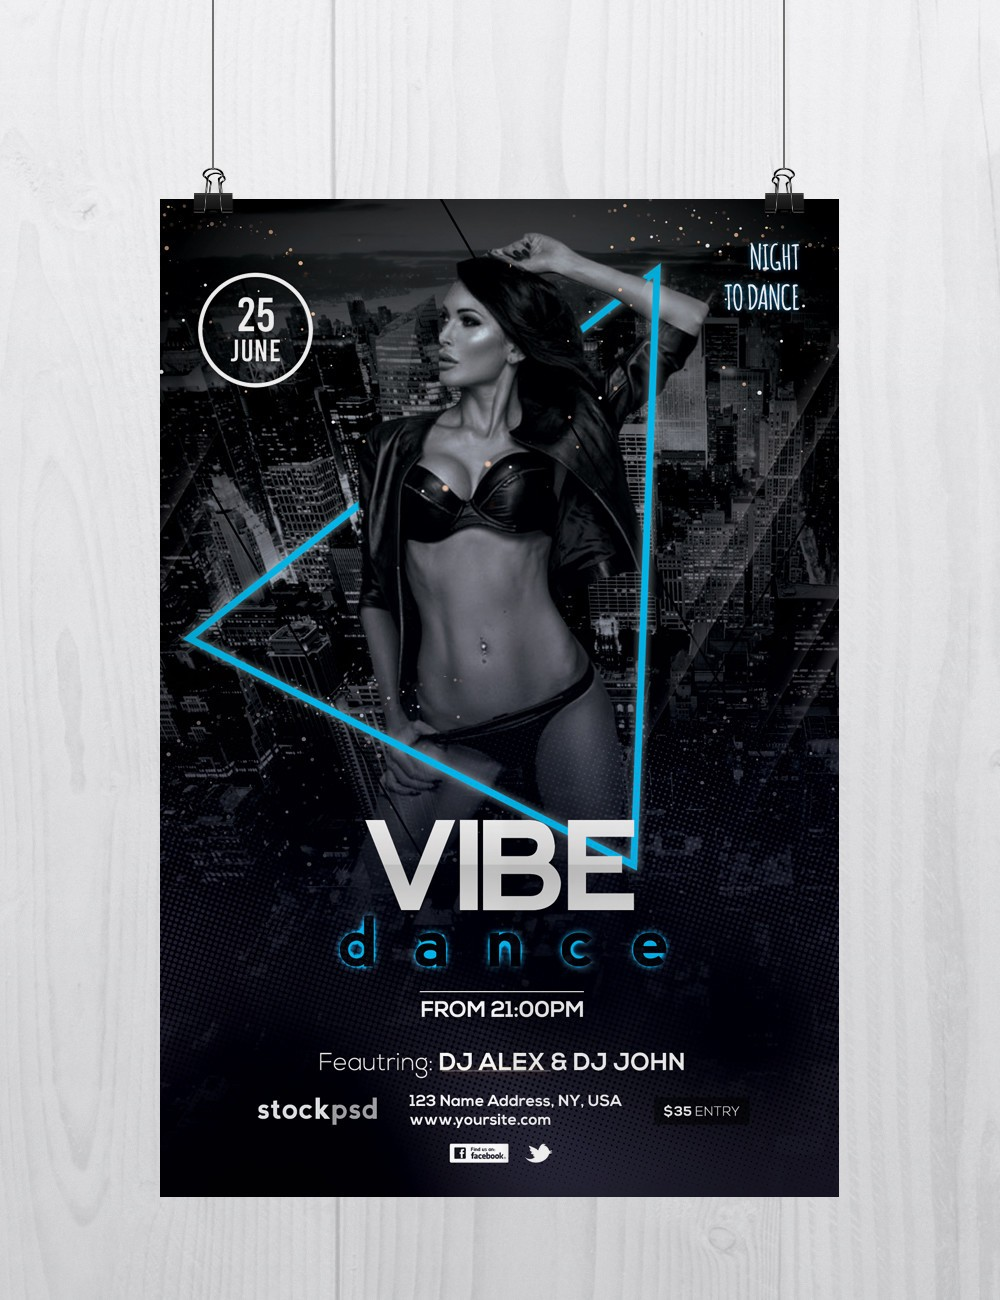 vibe dance free psd photoshop flyer template stockpsd